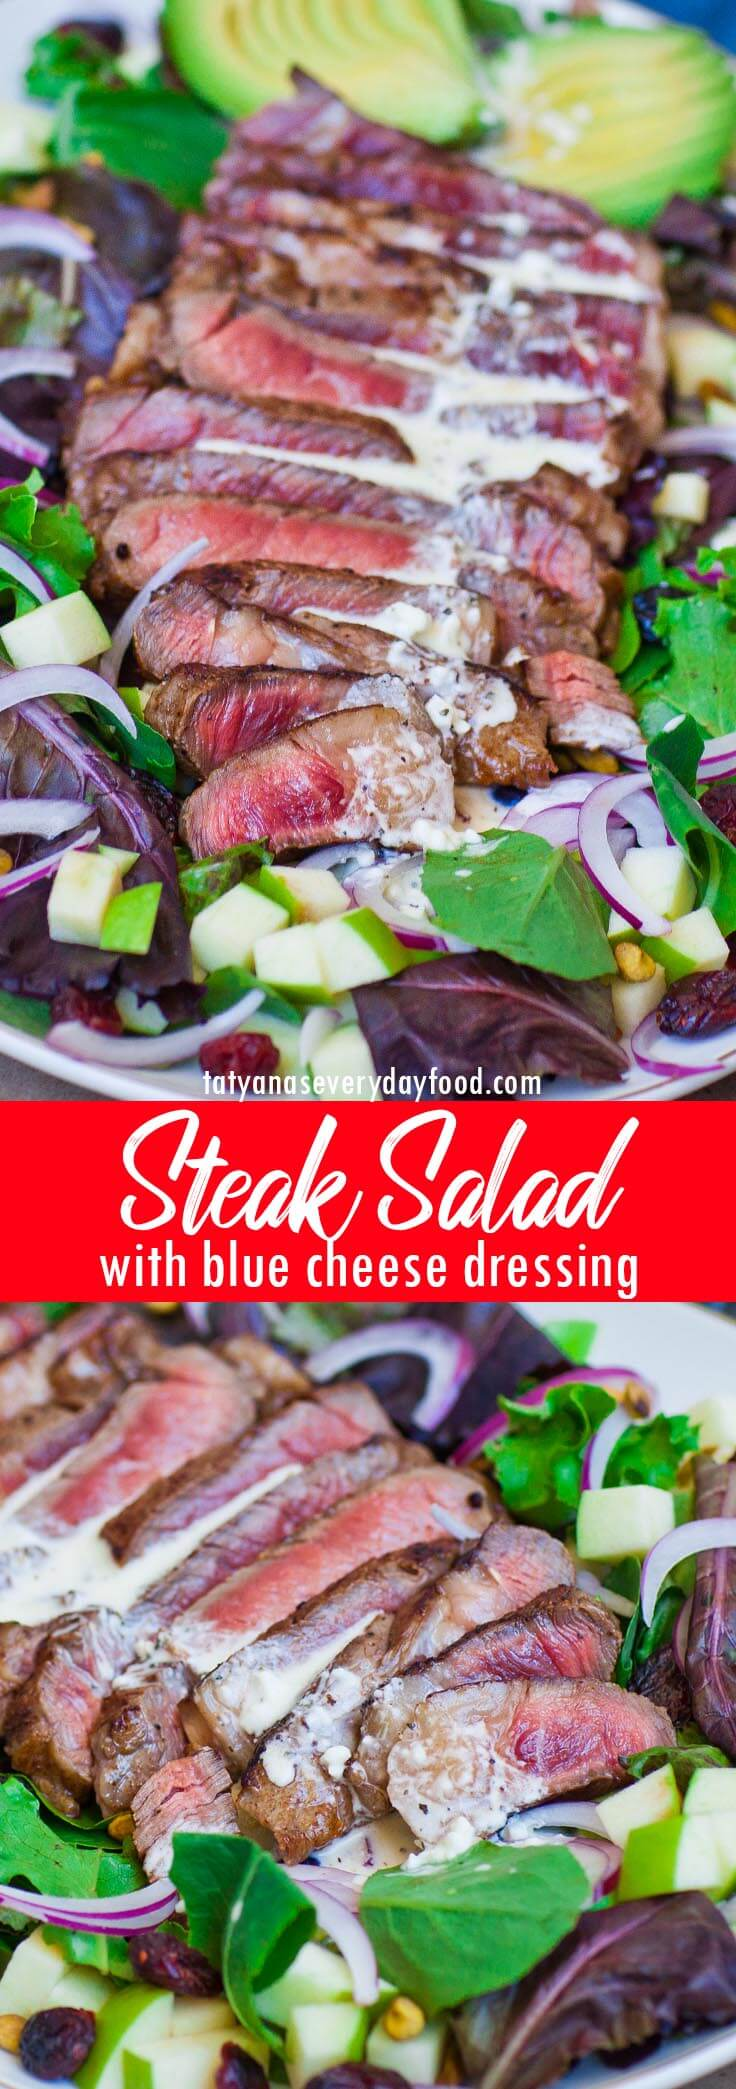 Blue Cheese Steak Salad video recipe